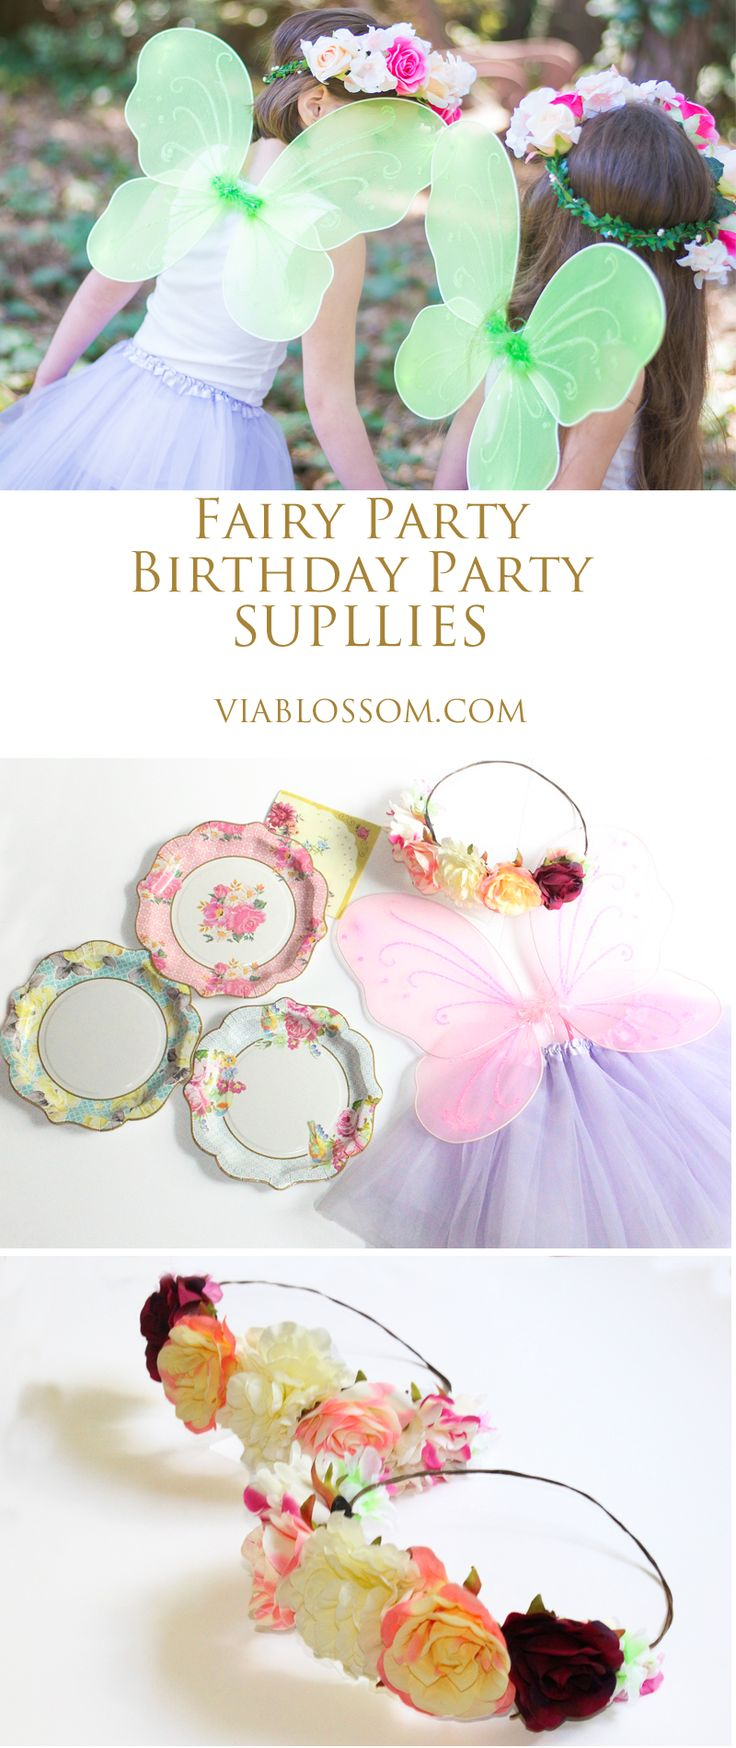 Big happy birthday badges party products party delights - Big Happy Birthday Badges Party Products Party Delights The 25 Best Party Supplies Ideas On Download